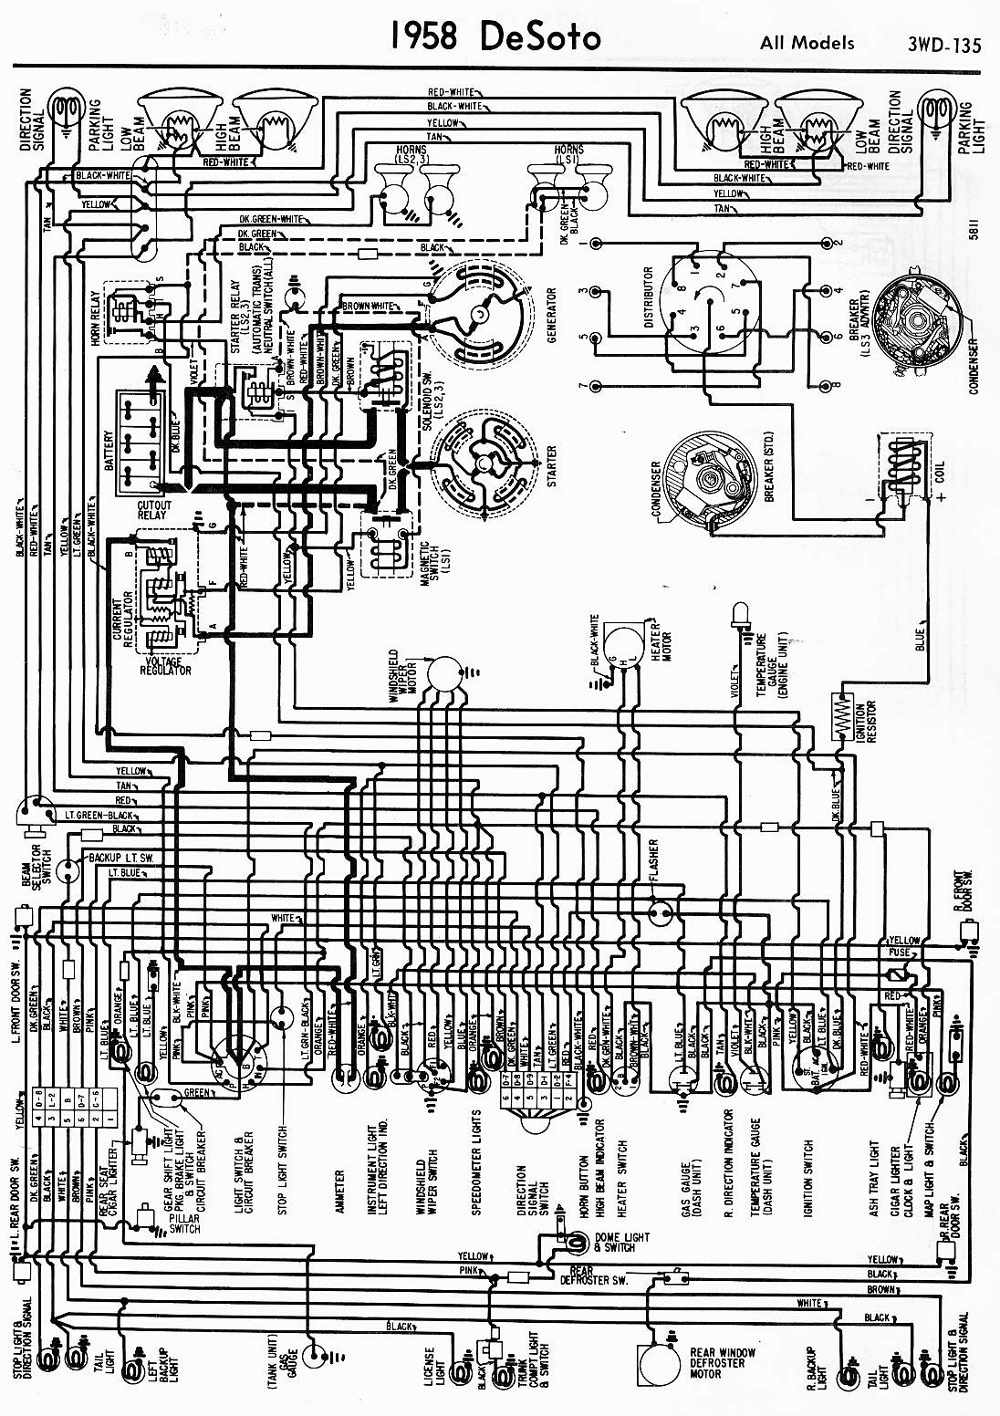 1950 Desoto Wiring Diagram Trusted Diagrams Dodge Truck 1951 Enthusiast U2022 4 Door